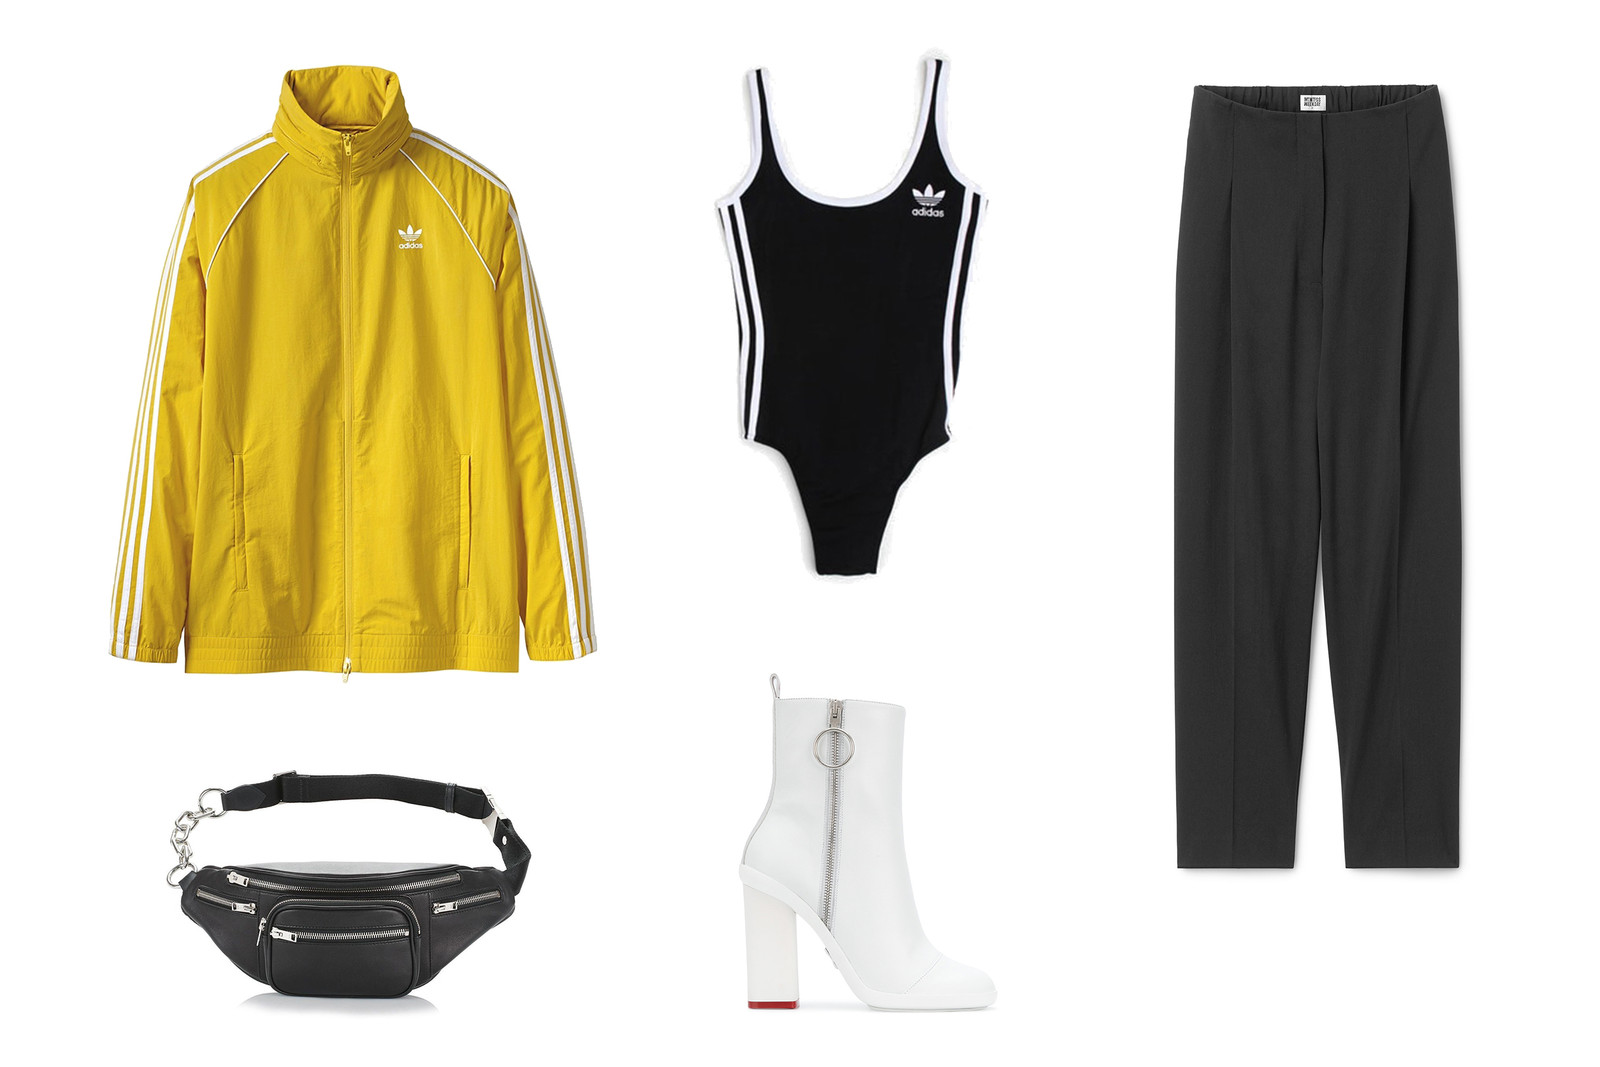 How to wear Body Suit Hypebae Look Outfit Inspo Ideas Kappa adidas Adicolor Gosha Rubchinskiy Prada Cloudbust Off-White